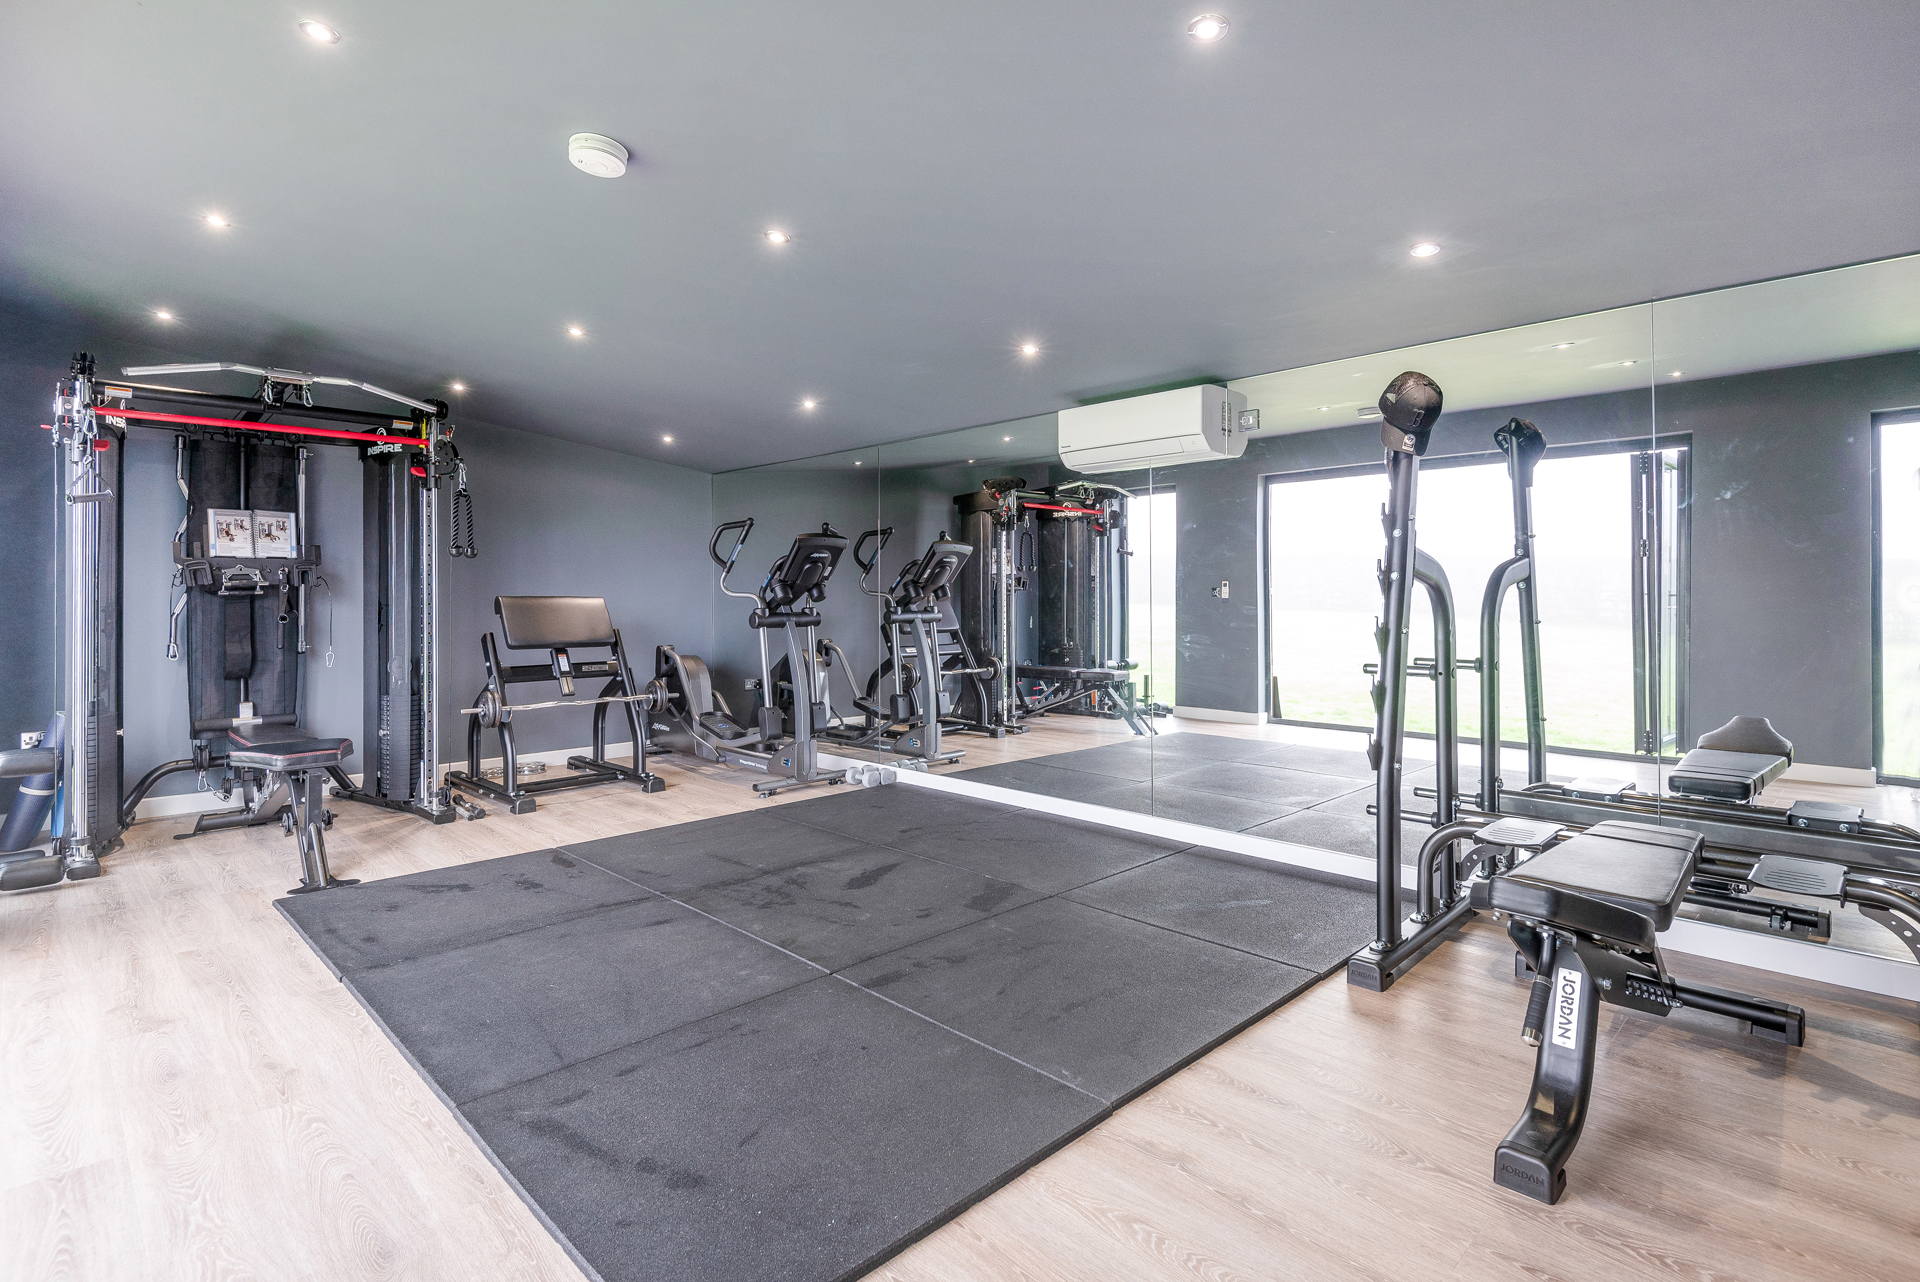 Garden room gym in Essex